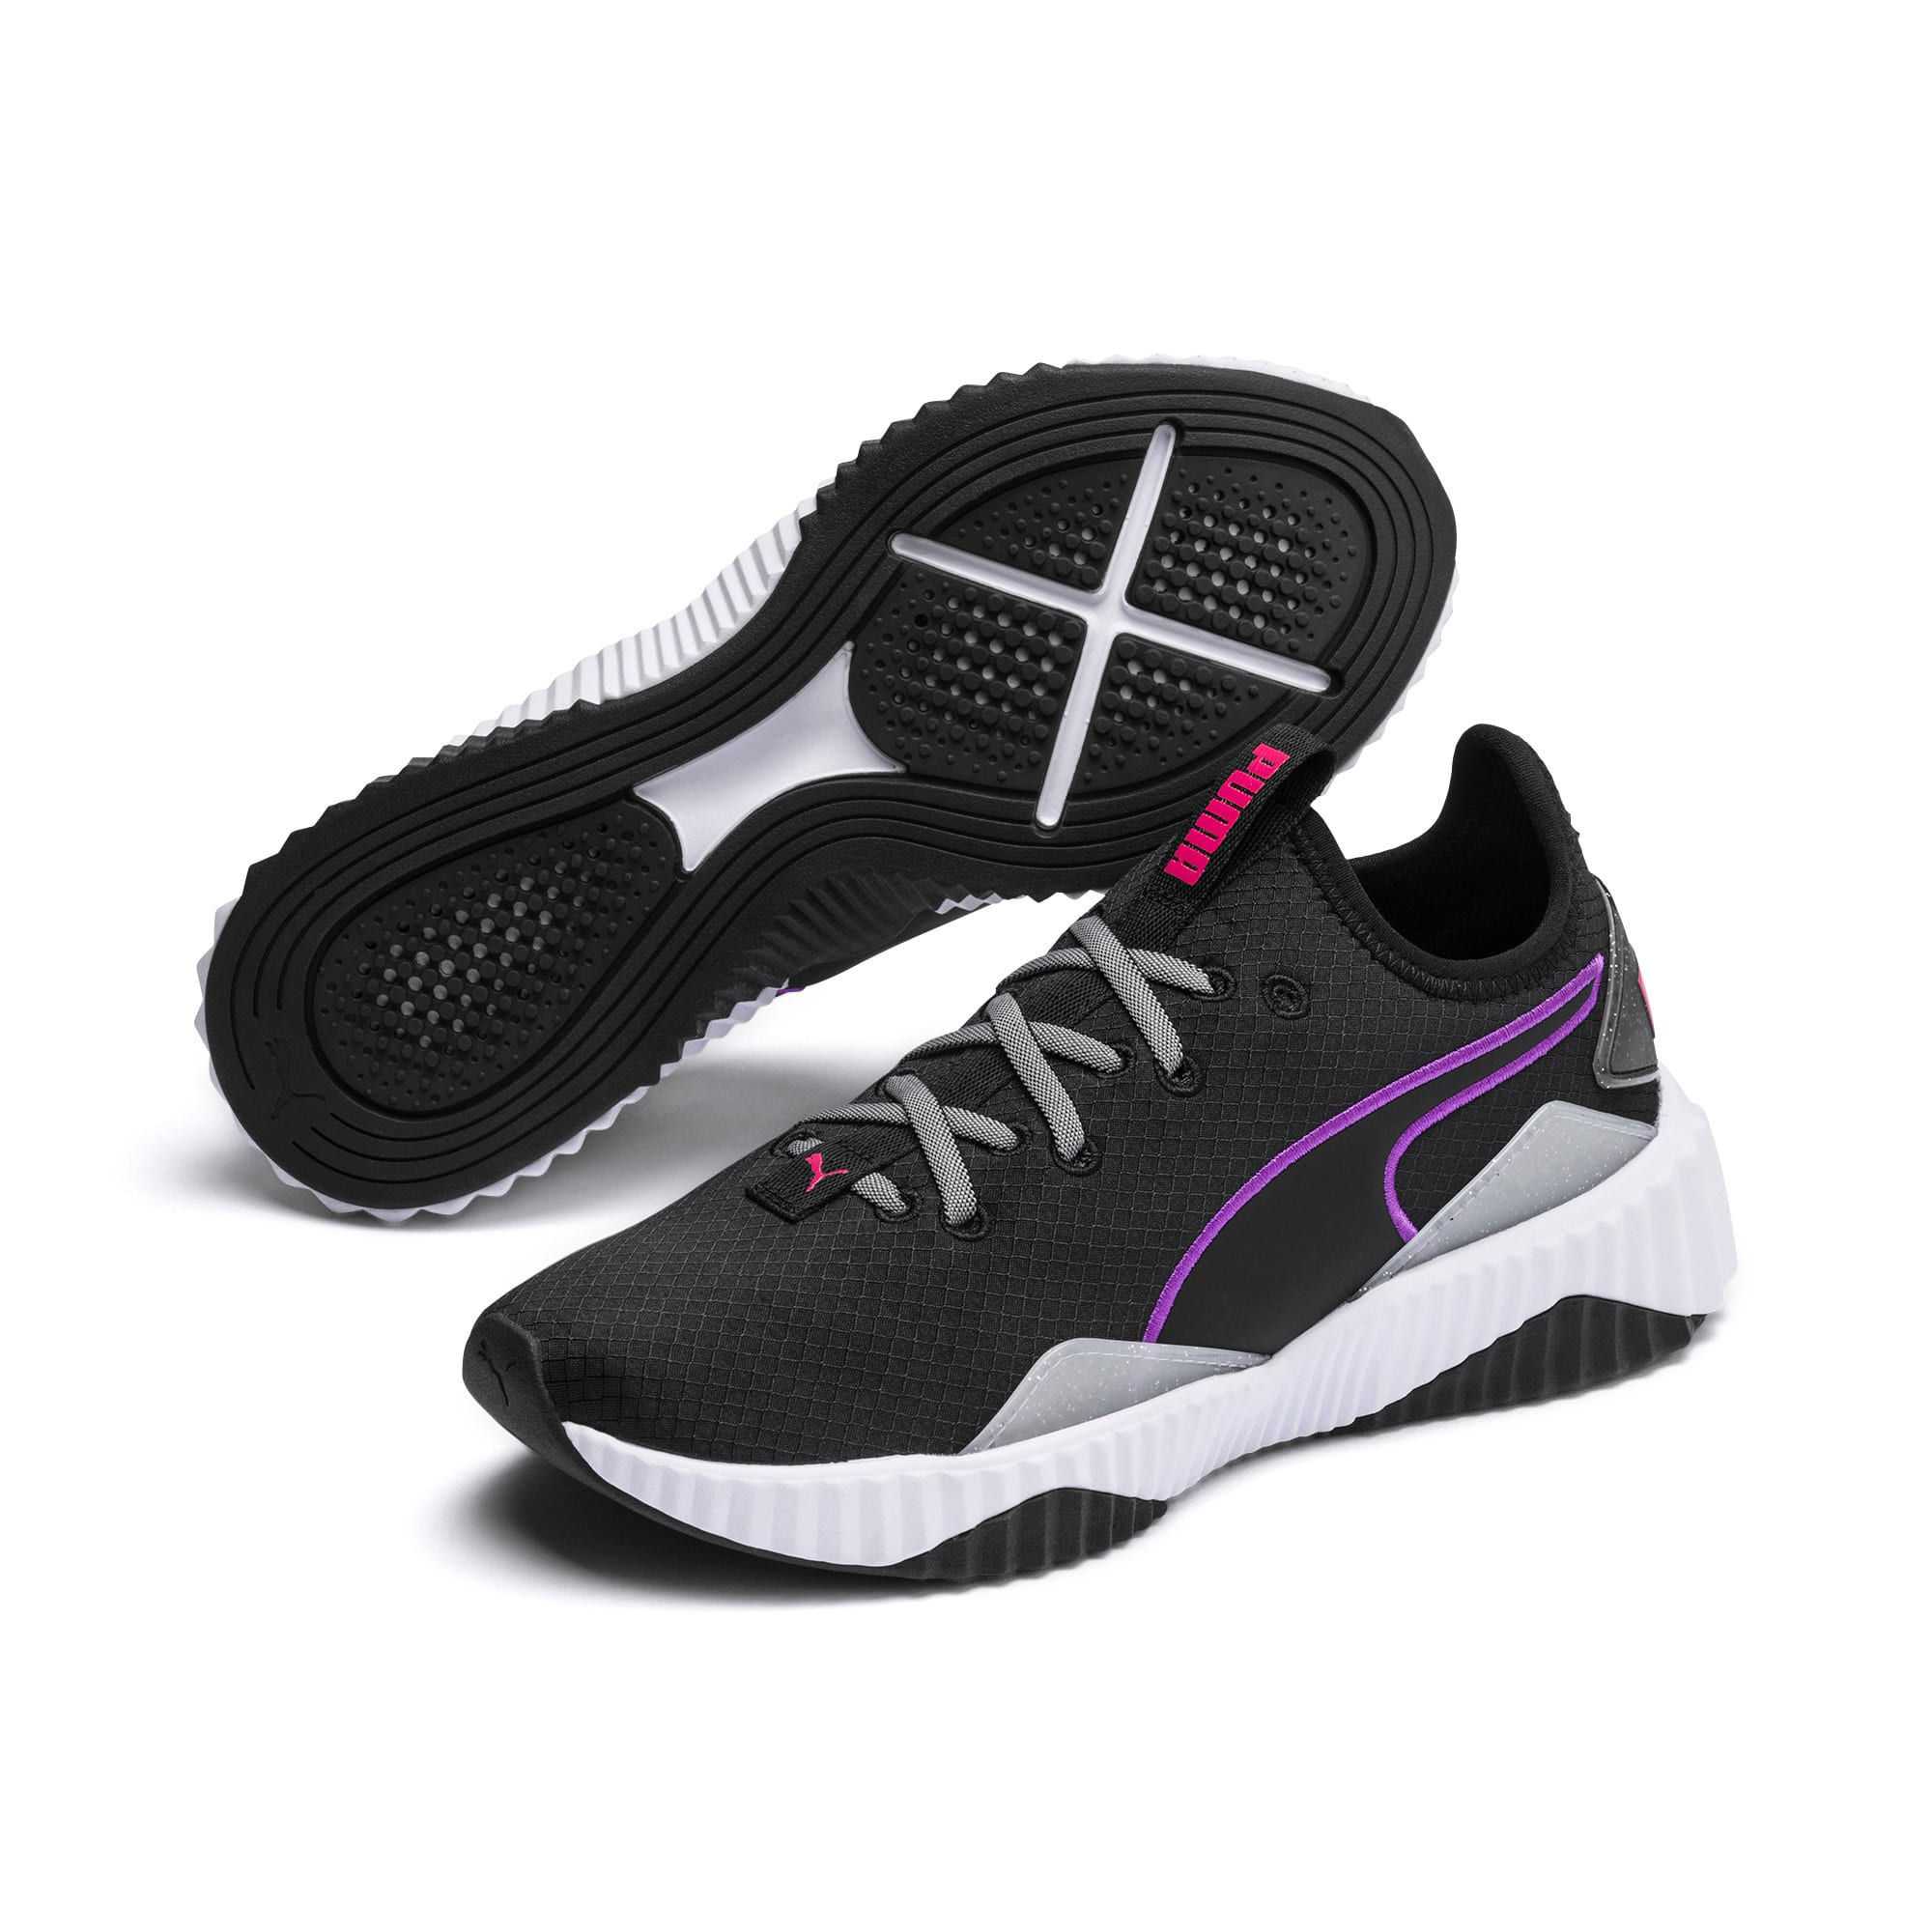 Thumbnail 2 of Defy Sheen Women's Training Shoes, Puma Black-Puma White, medium